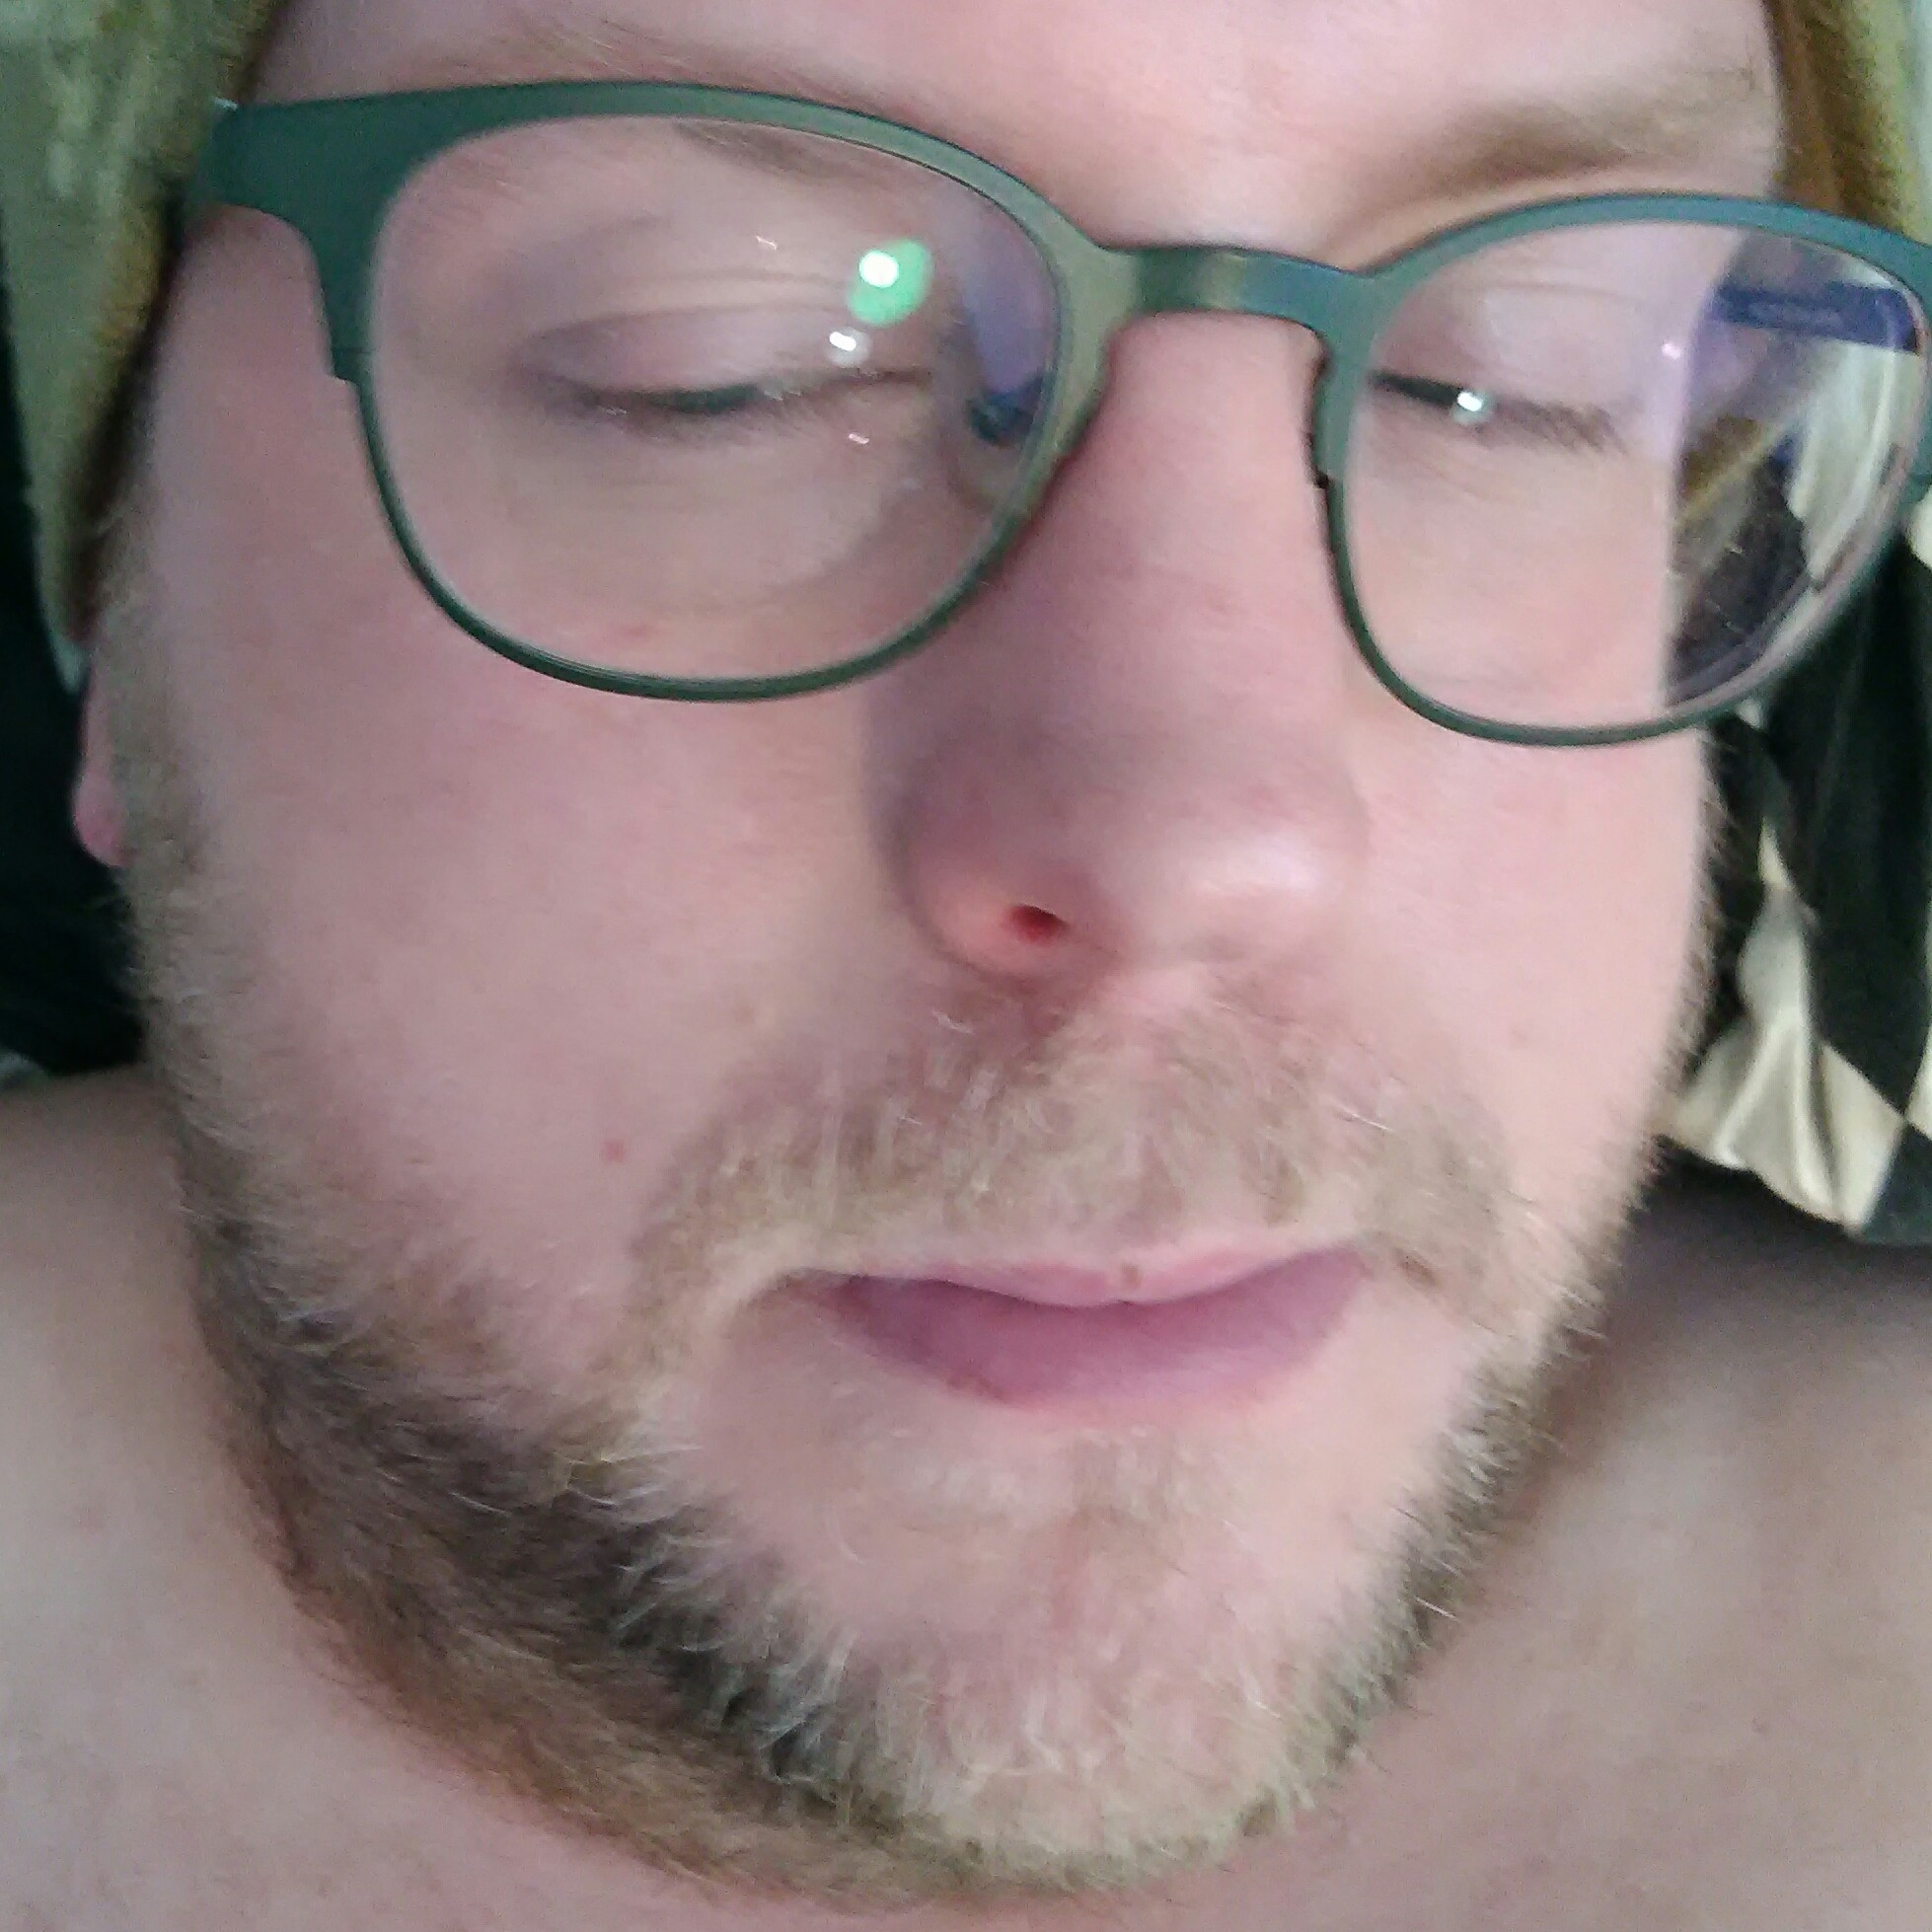 Video Call with SmoothChub